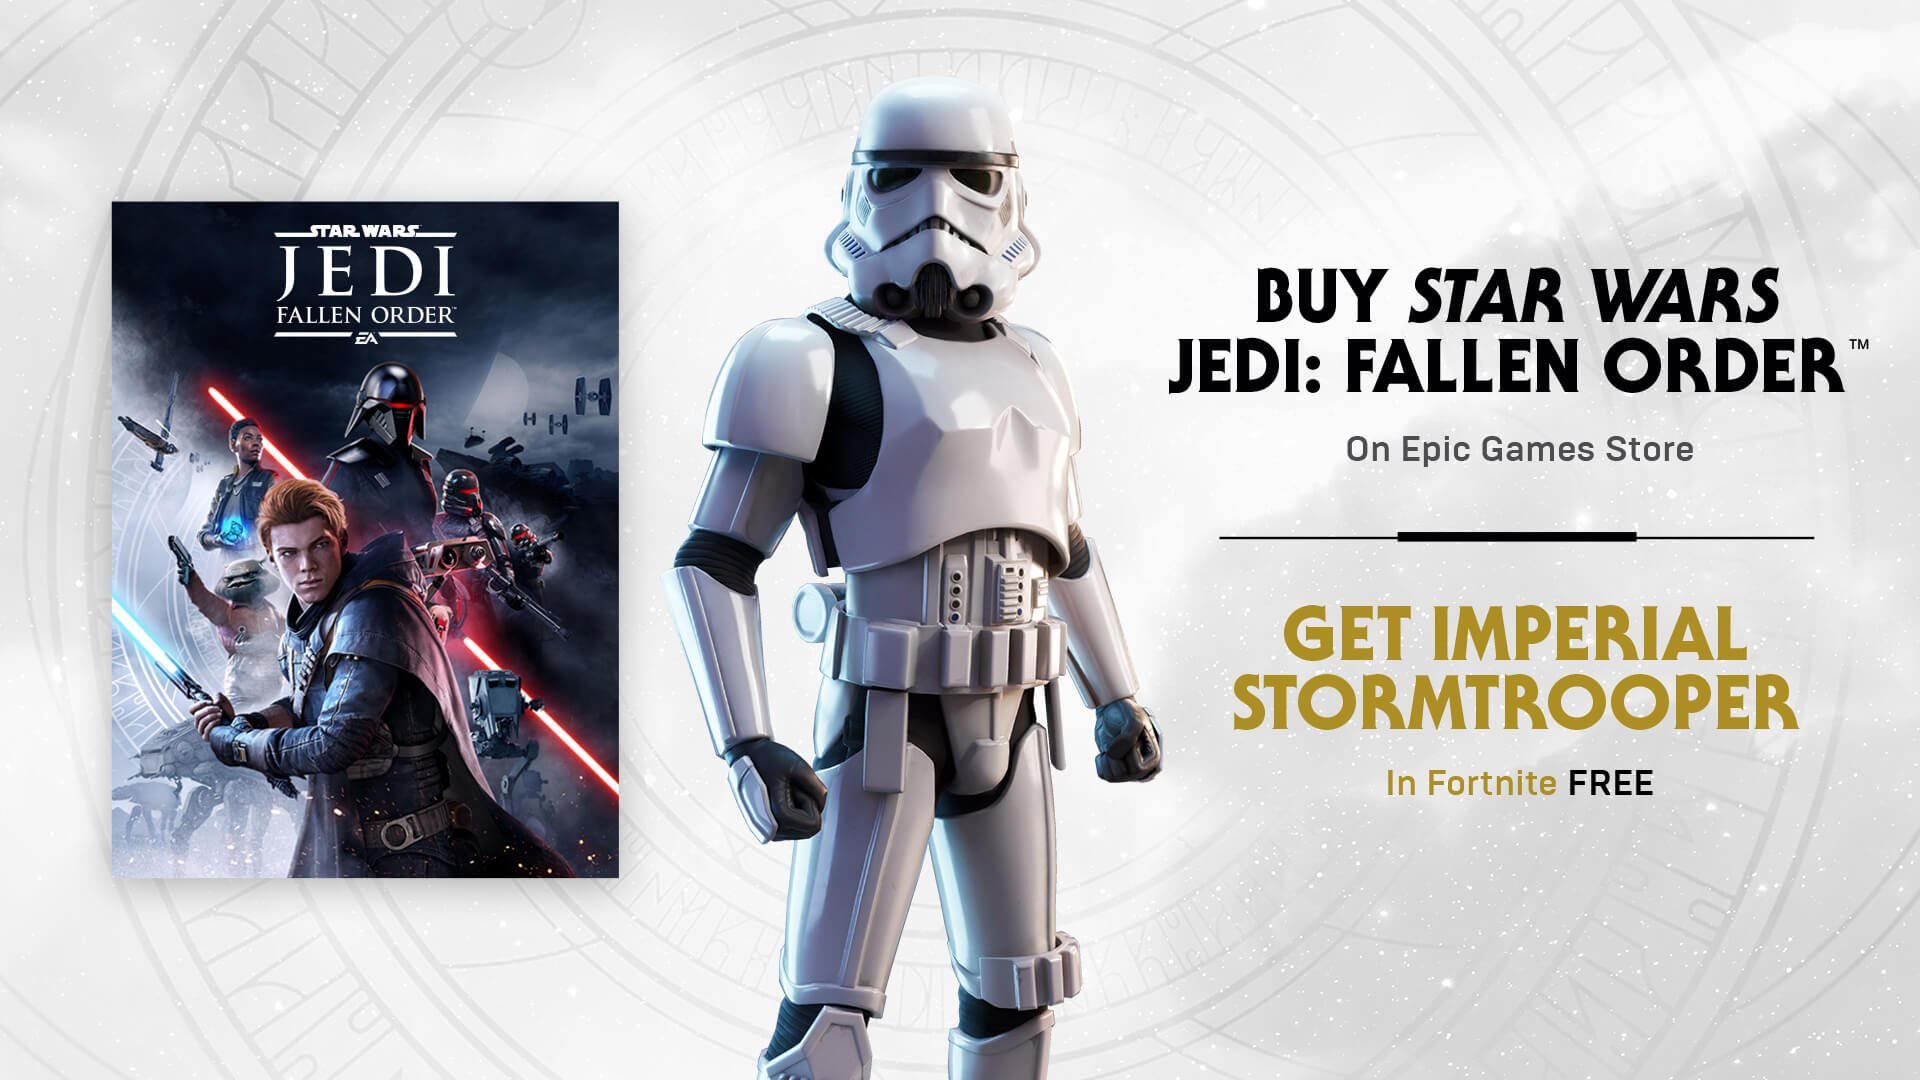 How To Get Fortnite Item Shop Imperial Stormtrooper Skin For Free